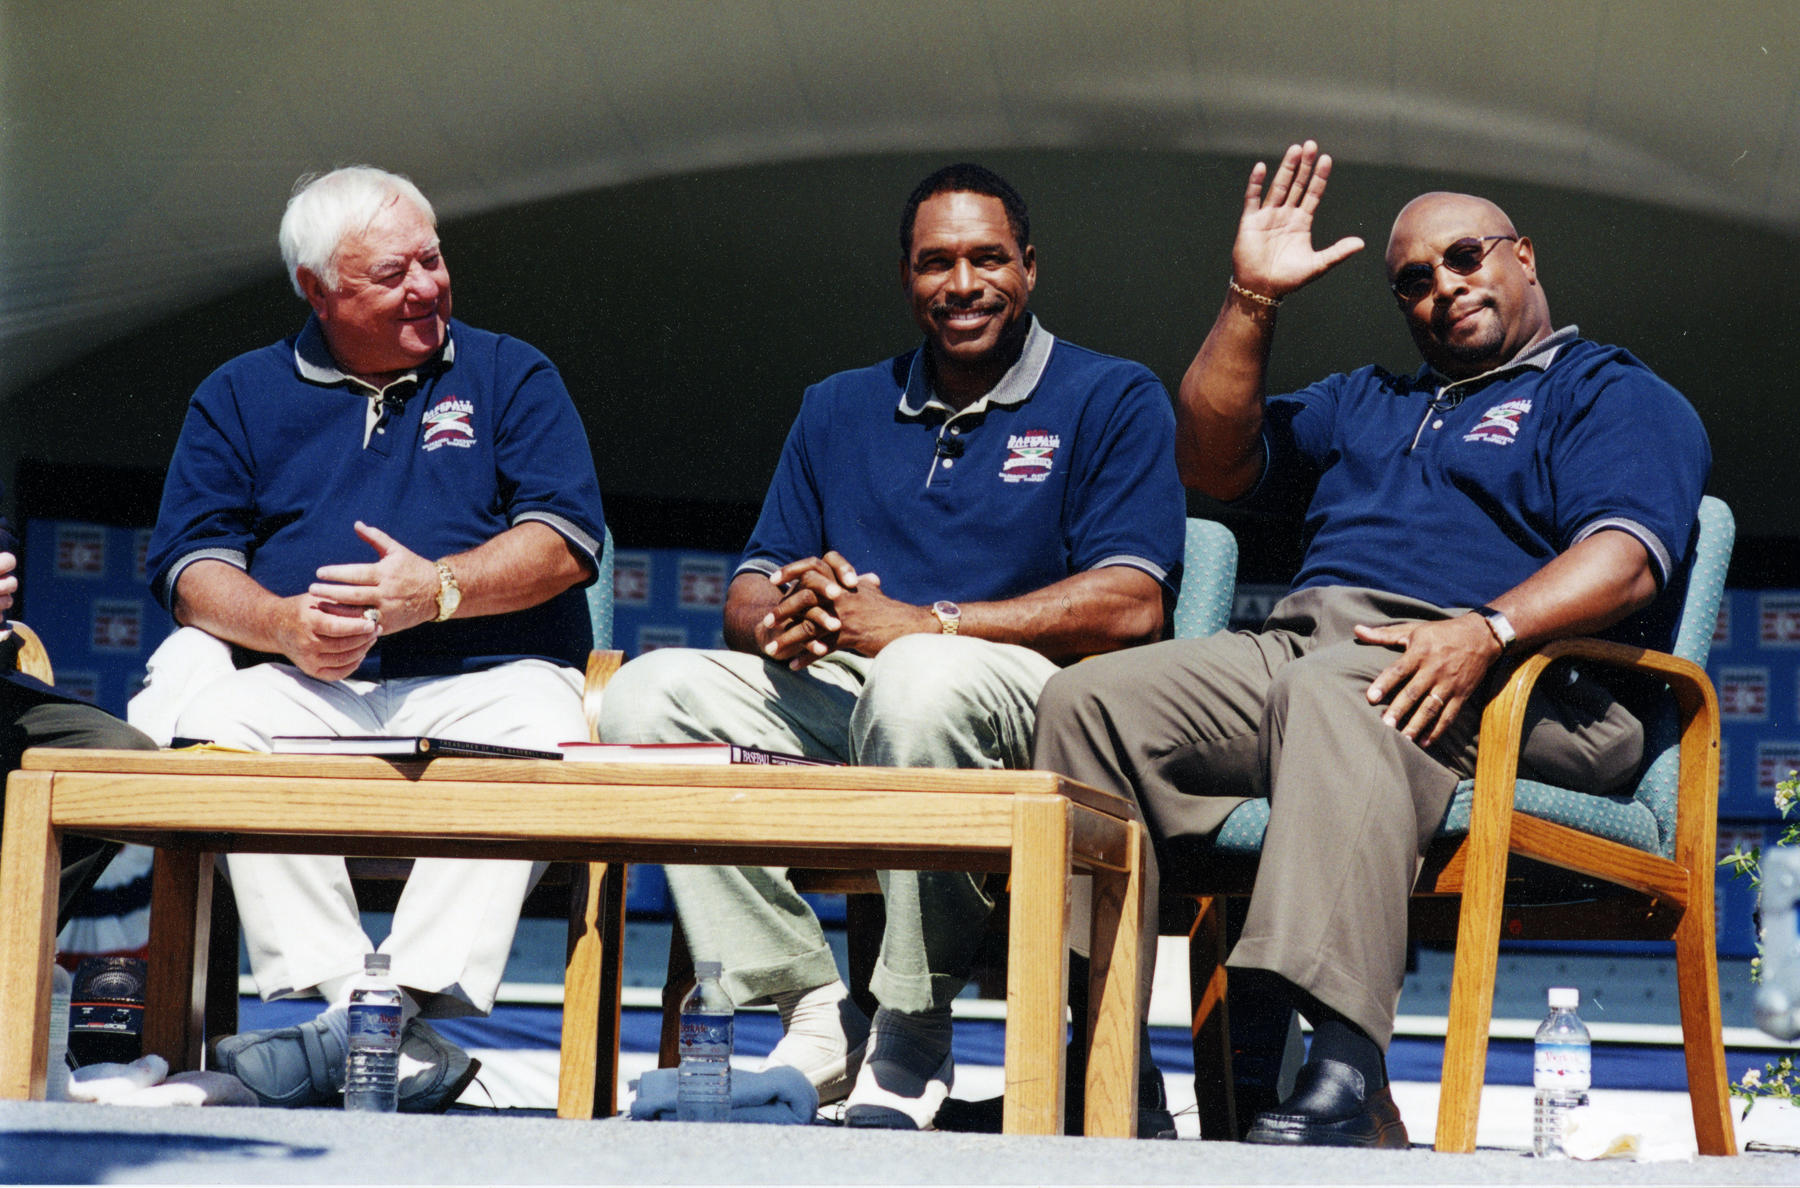 Class of 2001 inductees Bill Mazeroski, Dave Winfield and Kirby Puckett participate in a roundtable discussion during Hall of Fame Weekend in Cooperstown. (National Baseball Hall of Fame Library)